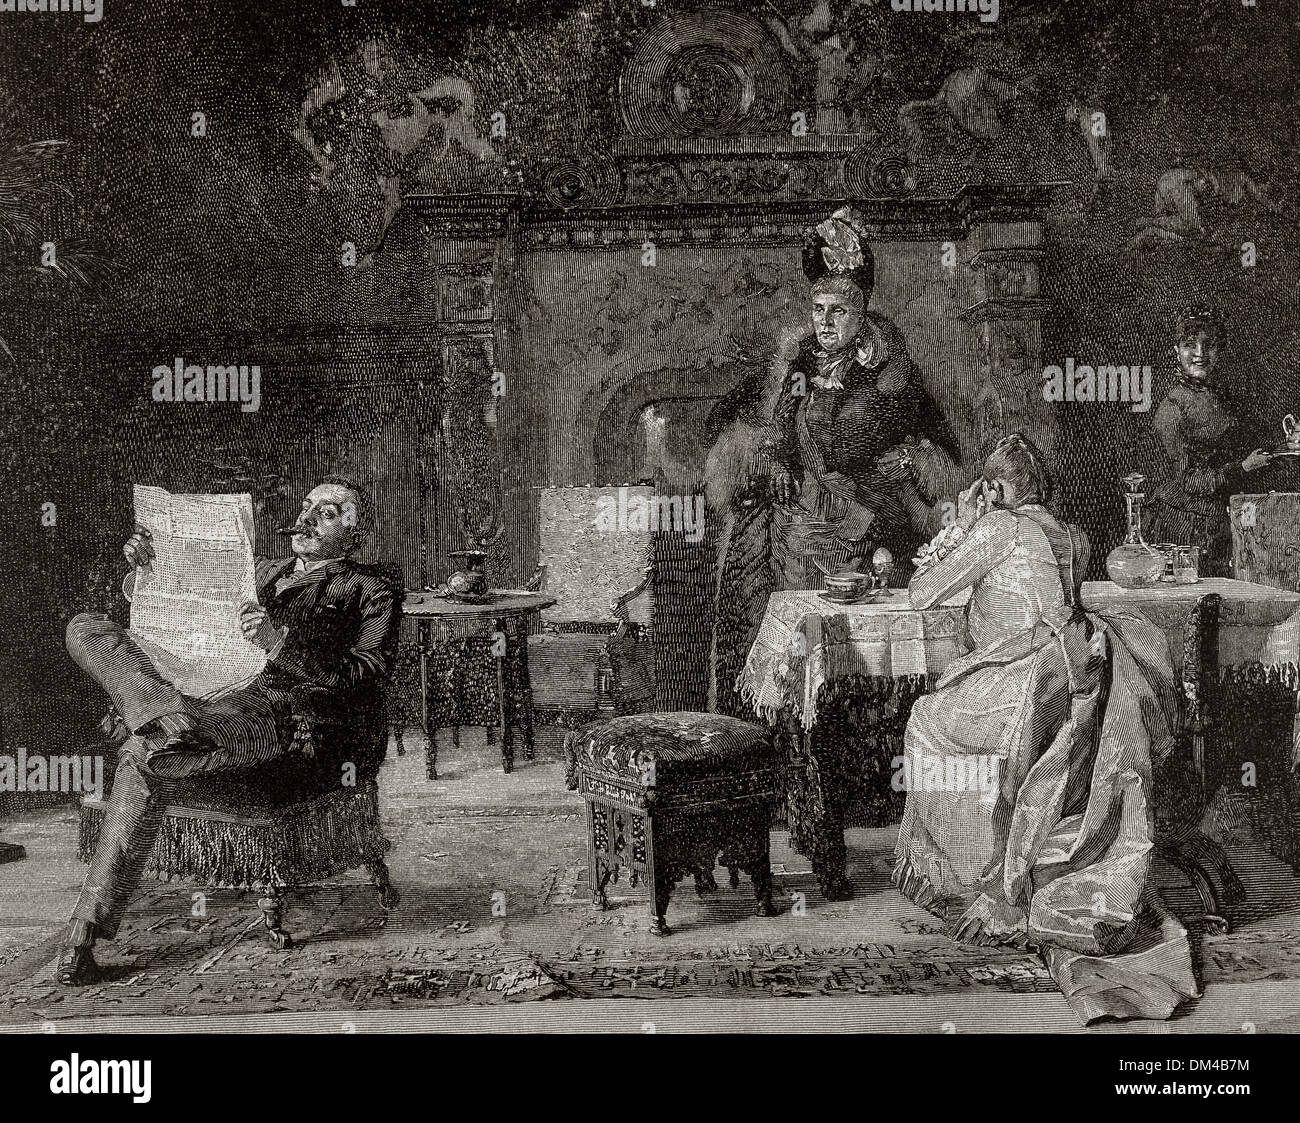 Bourgeois family in the living room. Engraving, 19th century. - Stock Image